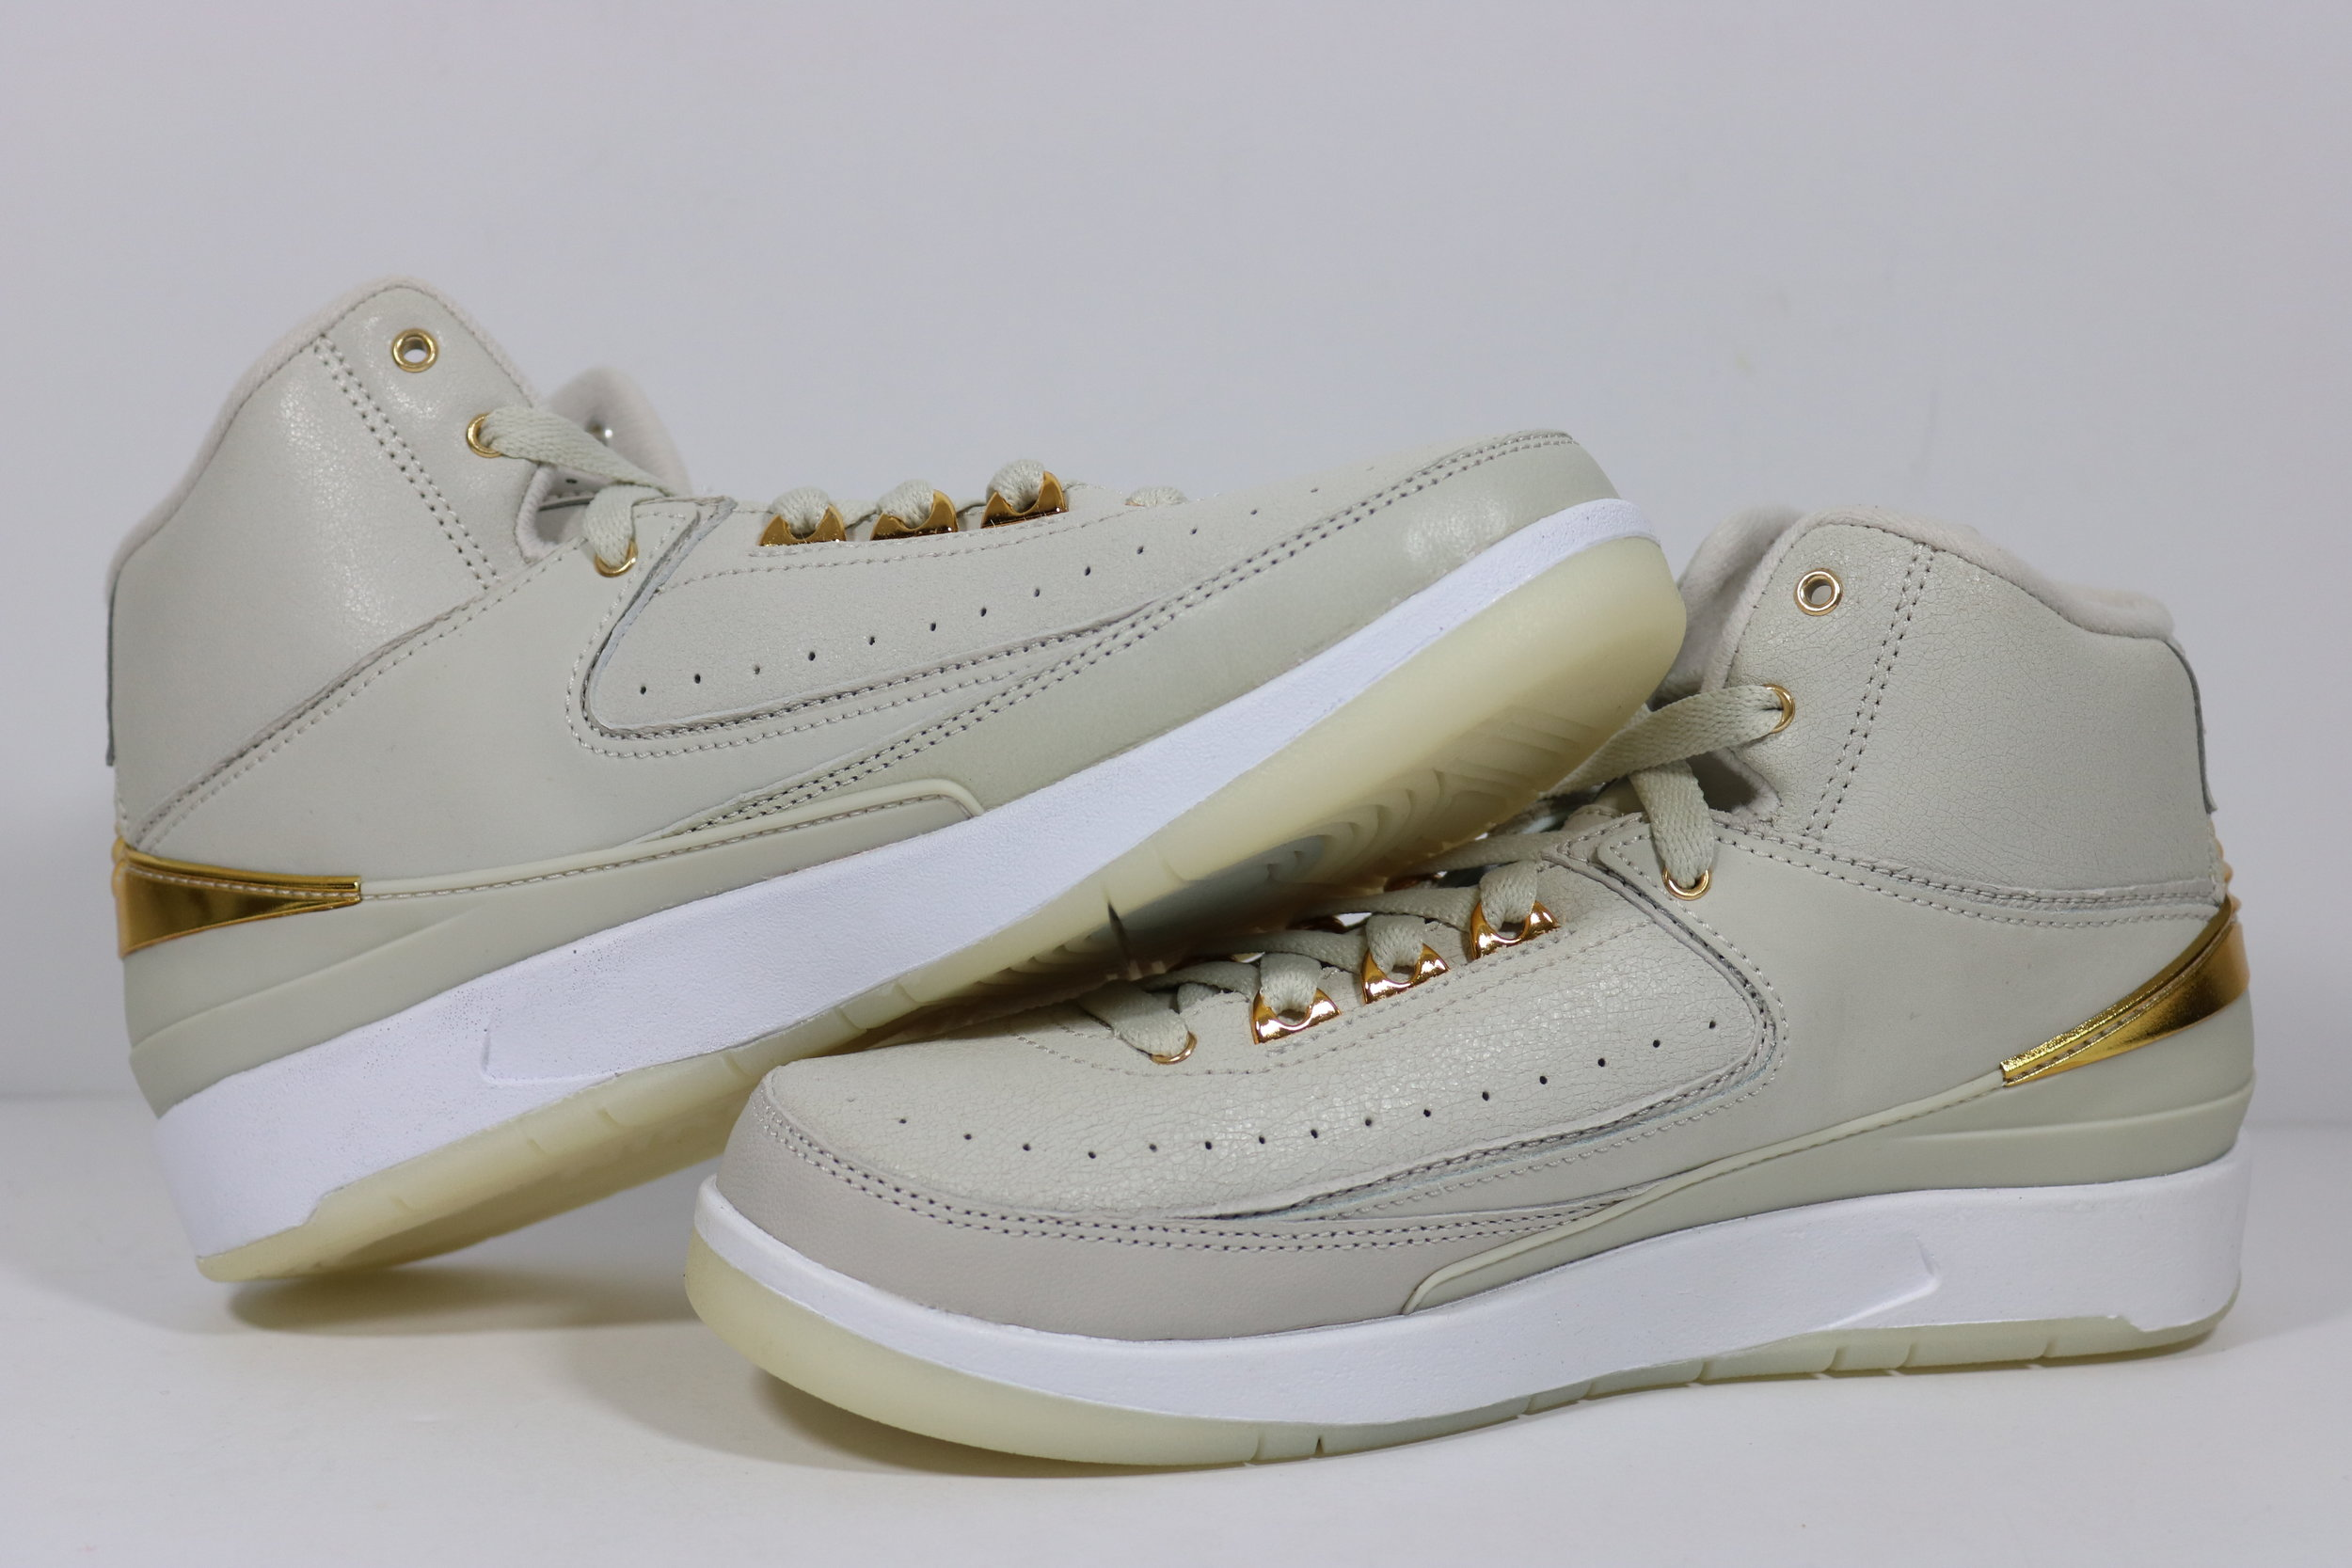 huge selection of 9c156 83d03 ... nike air jordan 2 retro bg q54 quai 54 size 5.5y 866034 001 2. ...